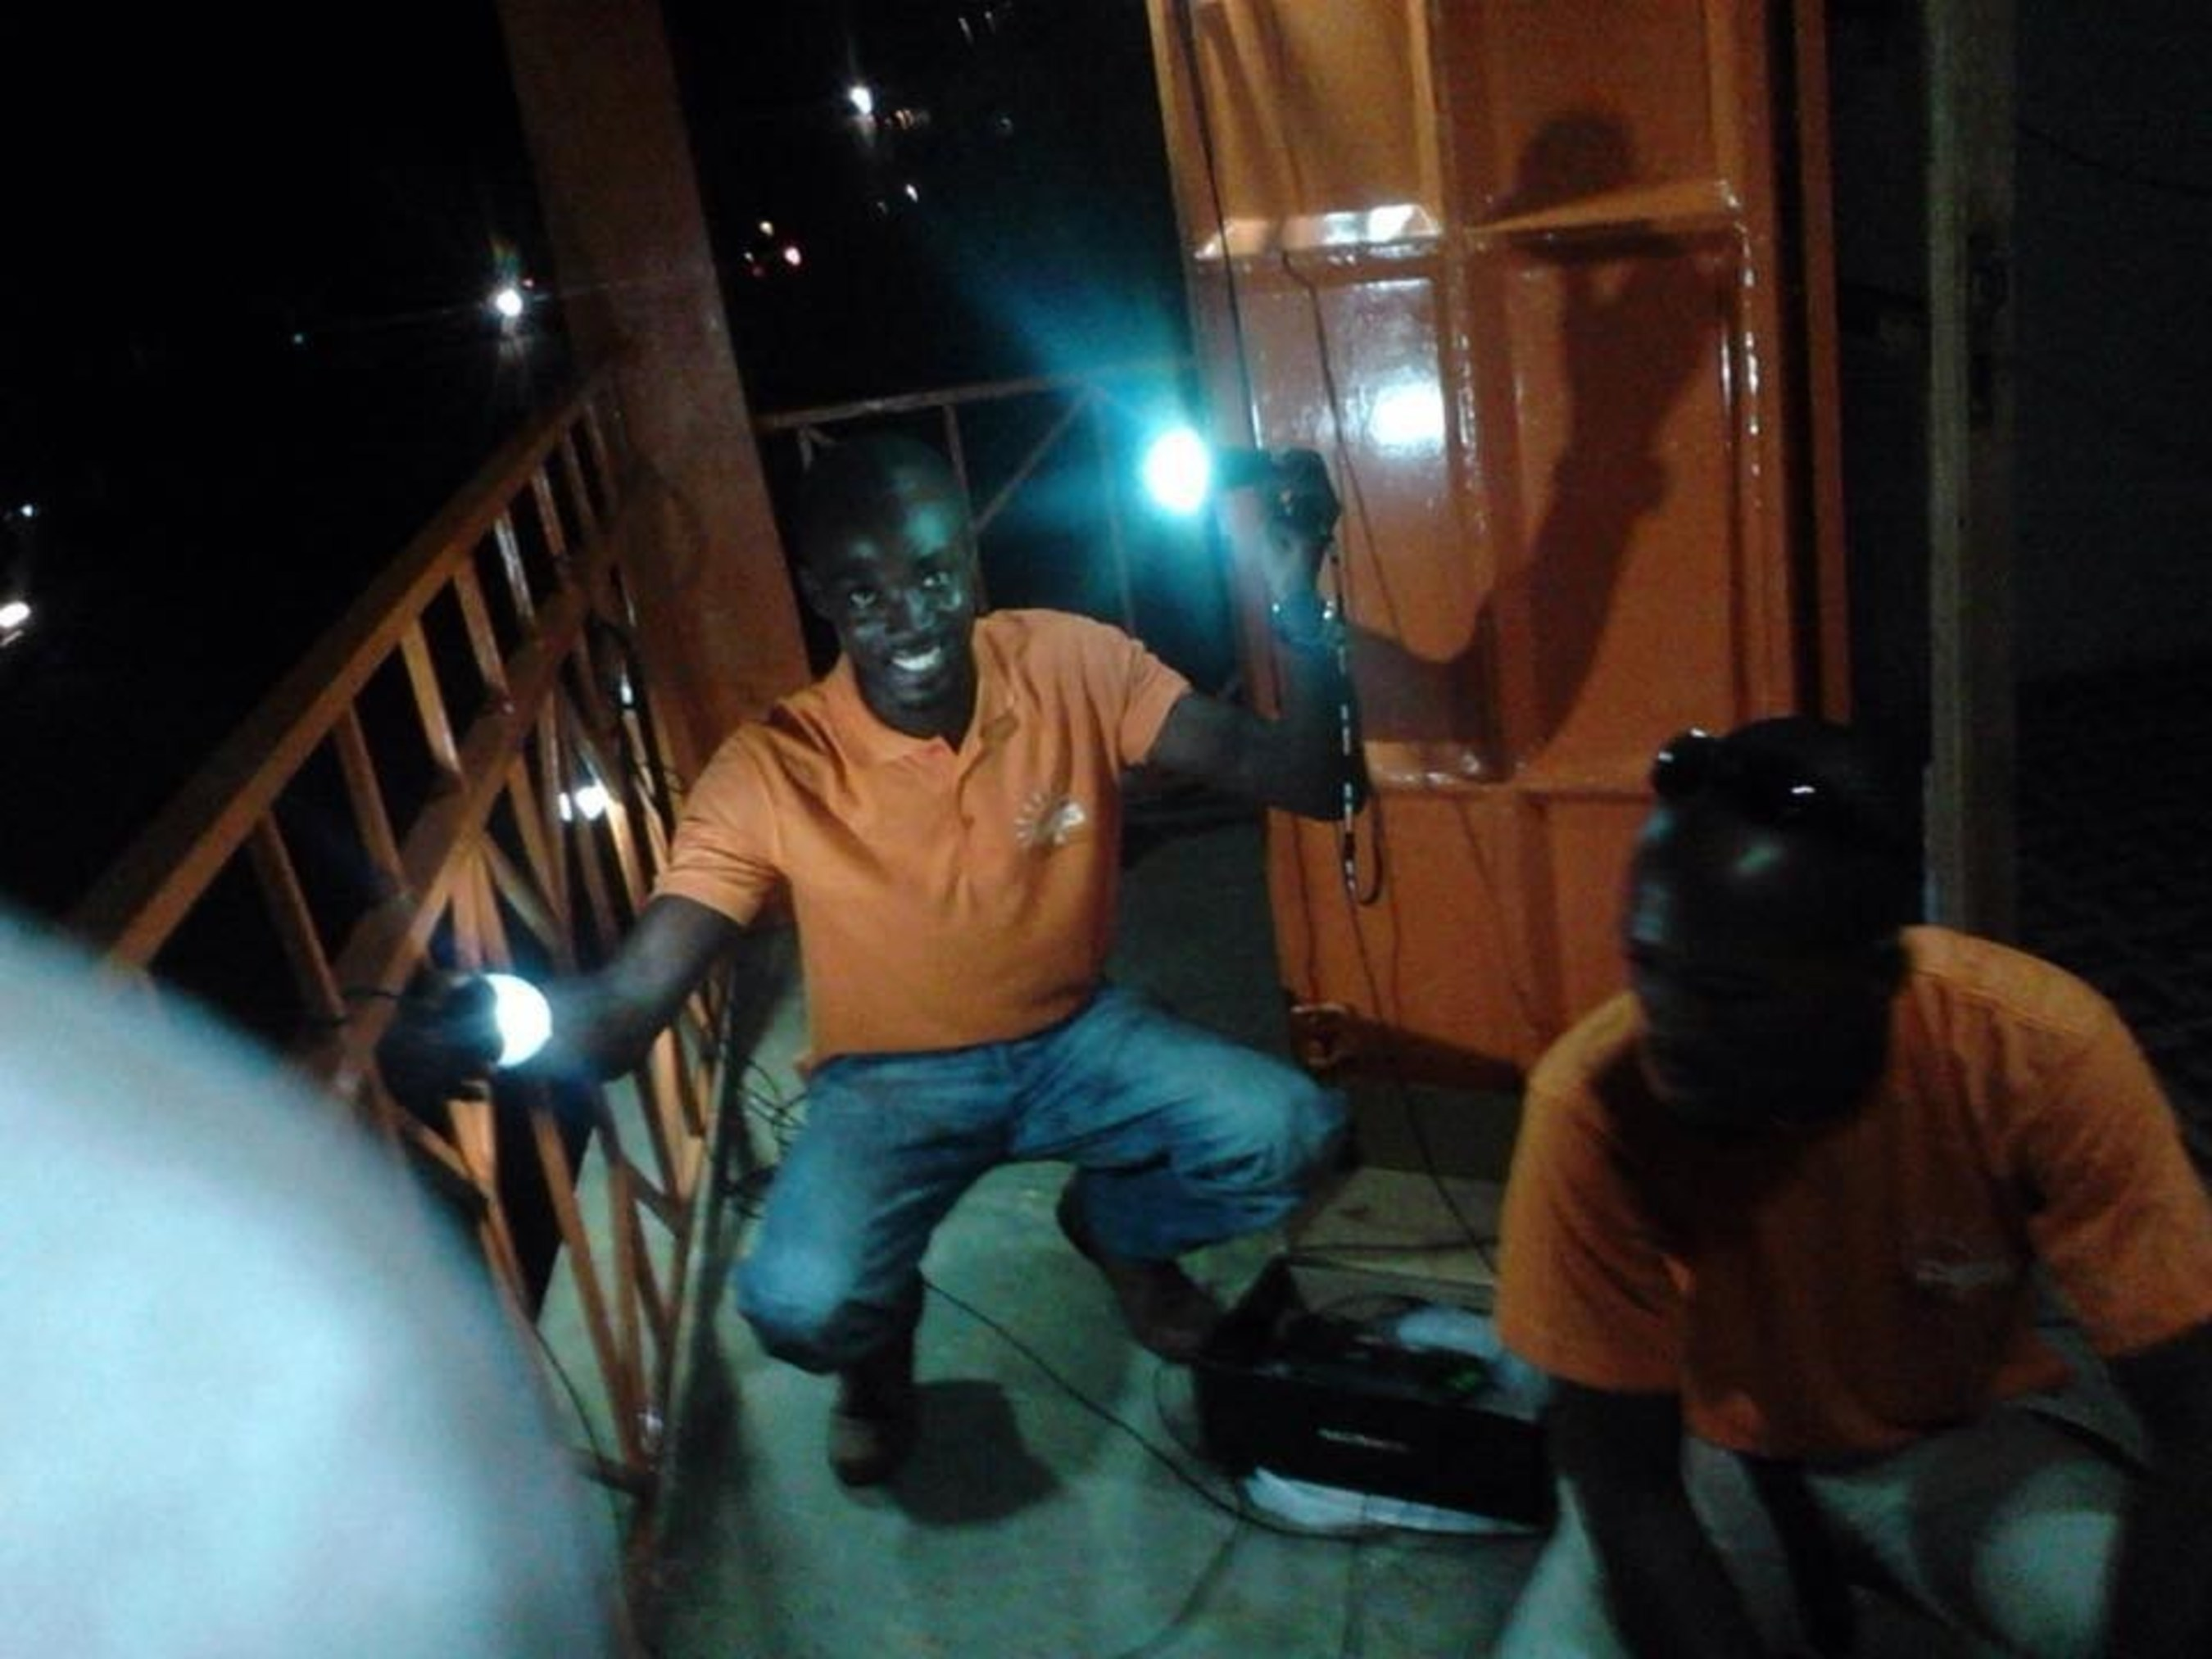 PEG raises $3.2 million to expand innovative solar to off-grid households in West Africa